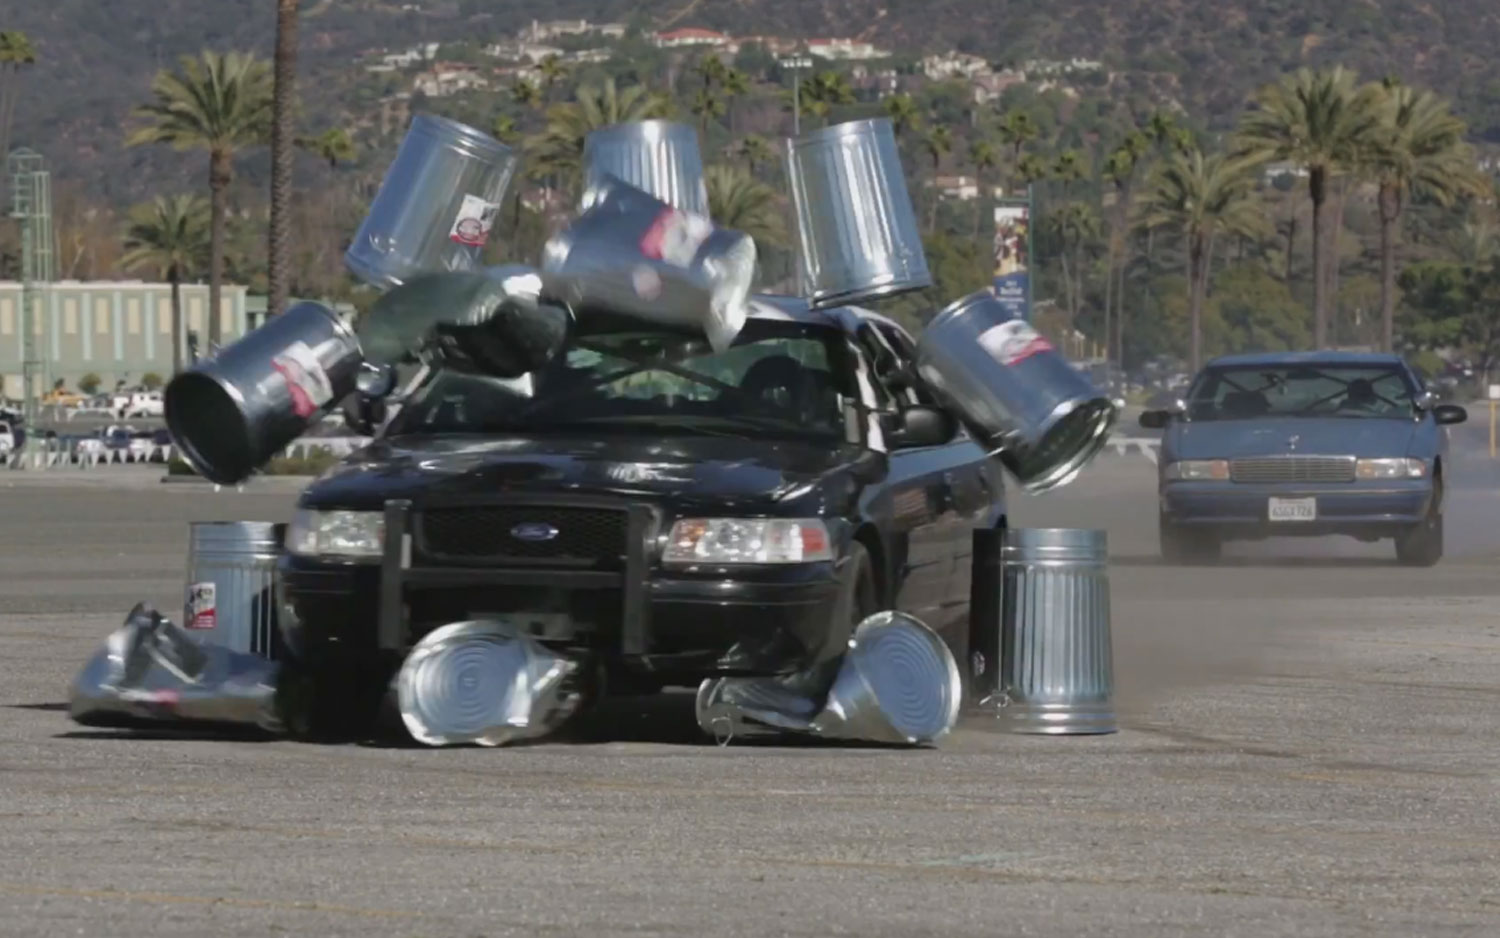 Ford Crown Victoria P71 Cop Car Plowing Through Trash Cans1